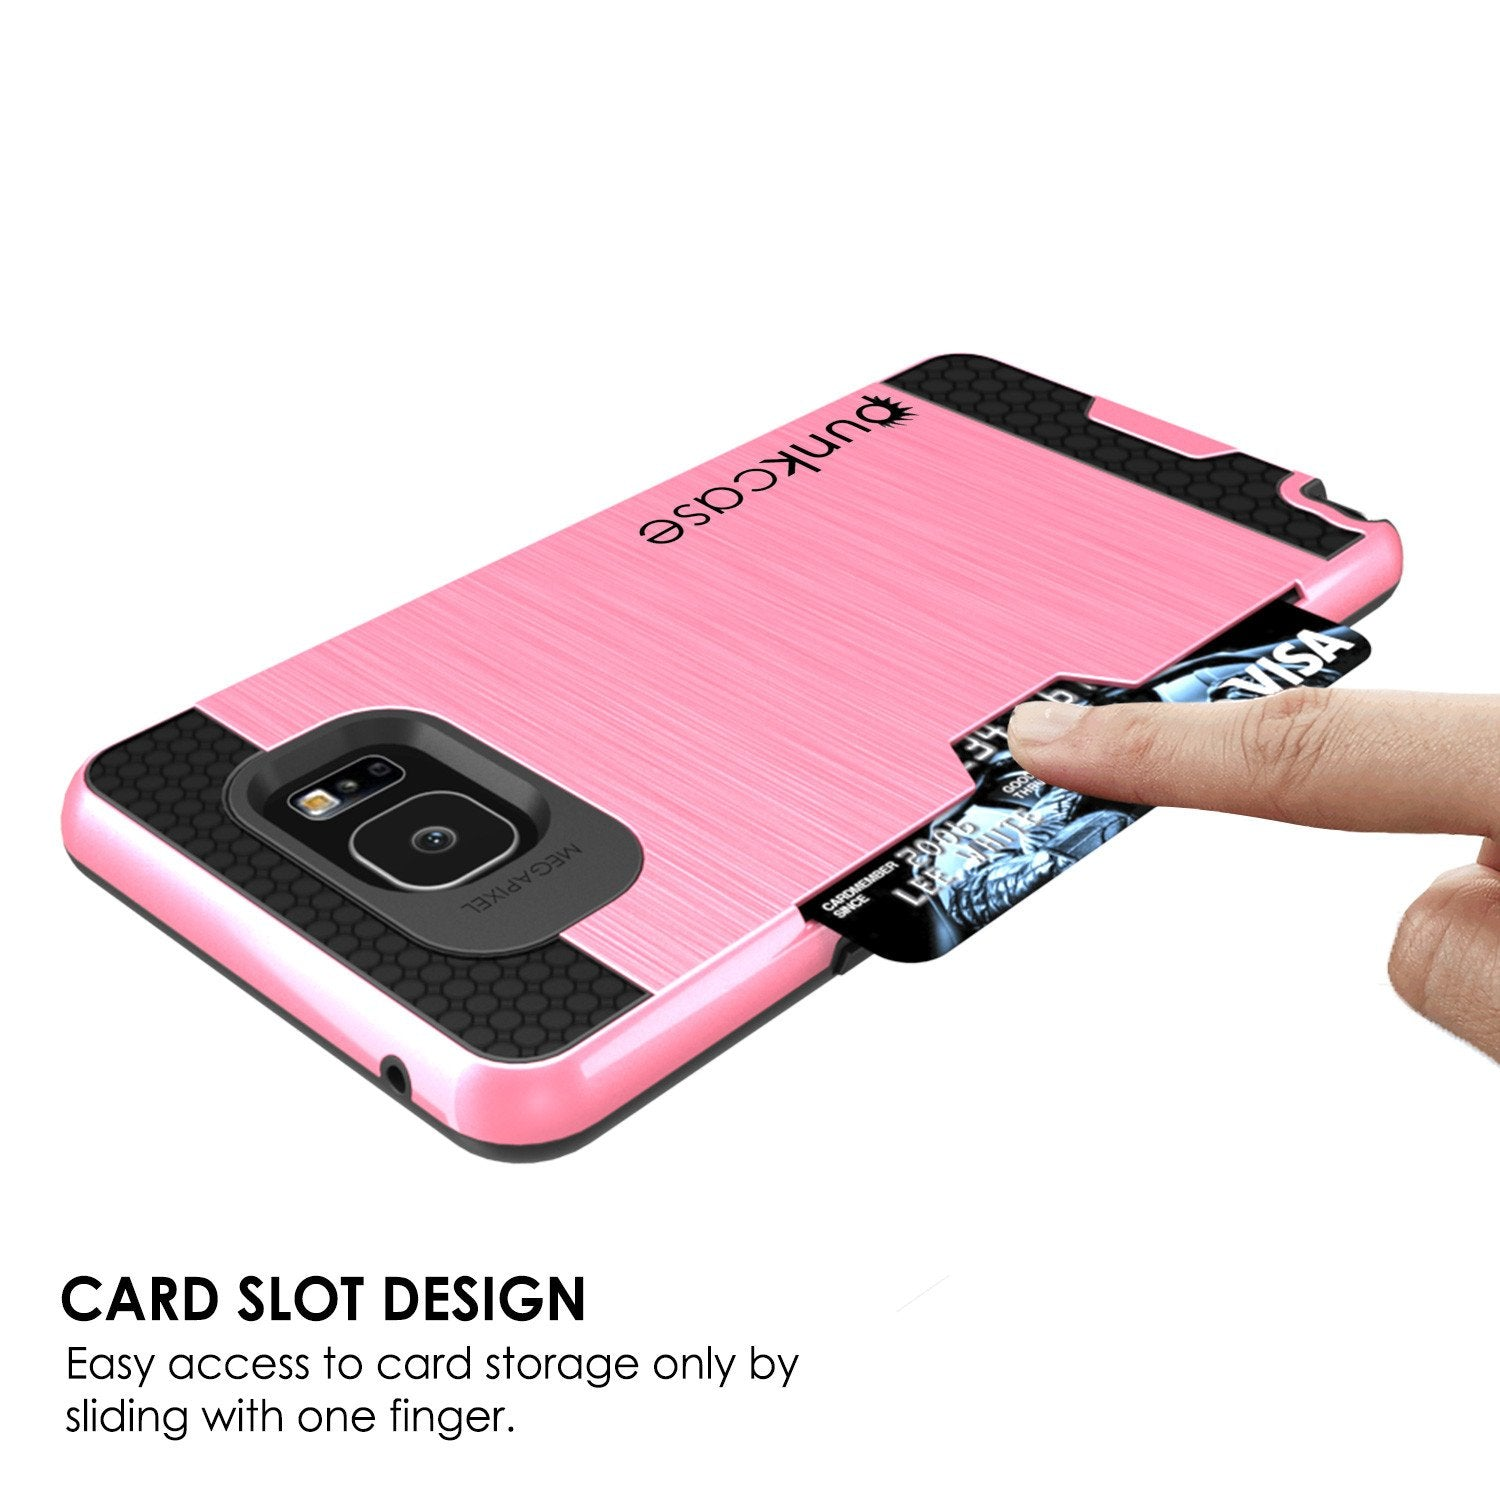 Galaxy Note 5 Case PunkCase SLOT Pink Series Slim Armor Soft Cover Case w/ Tempered Glass - PunkCase NZ